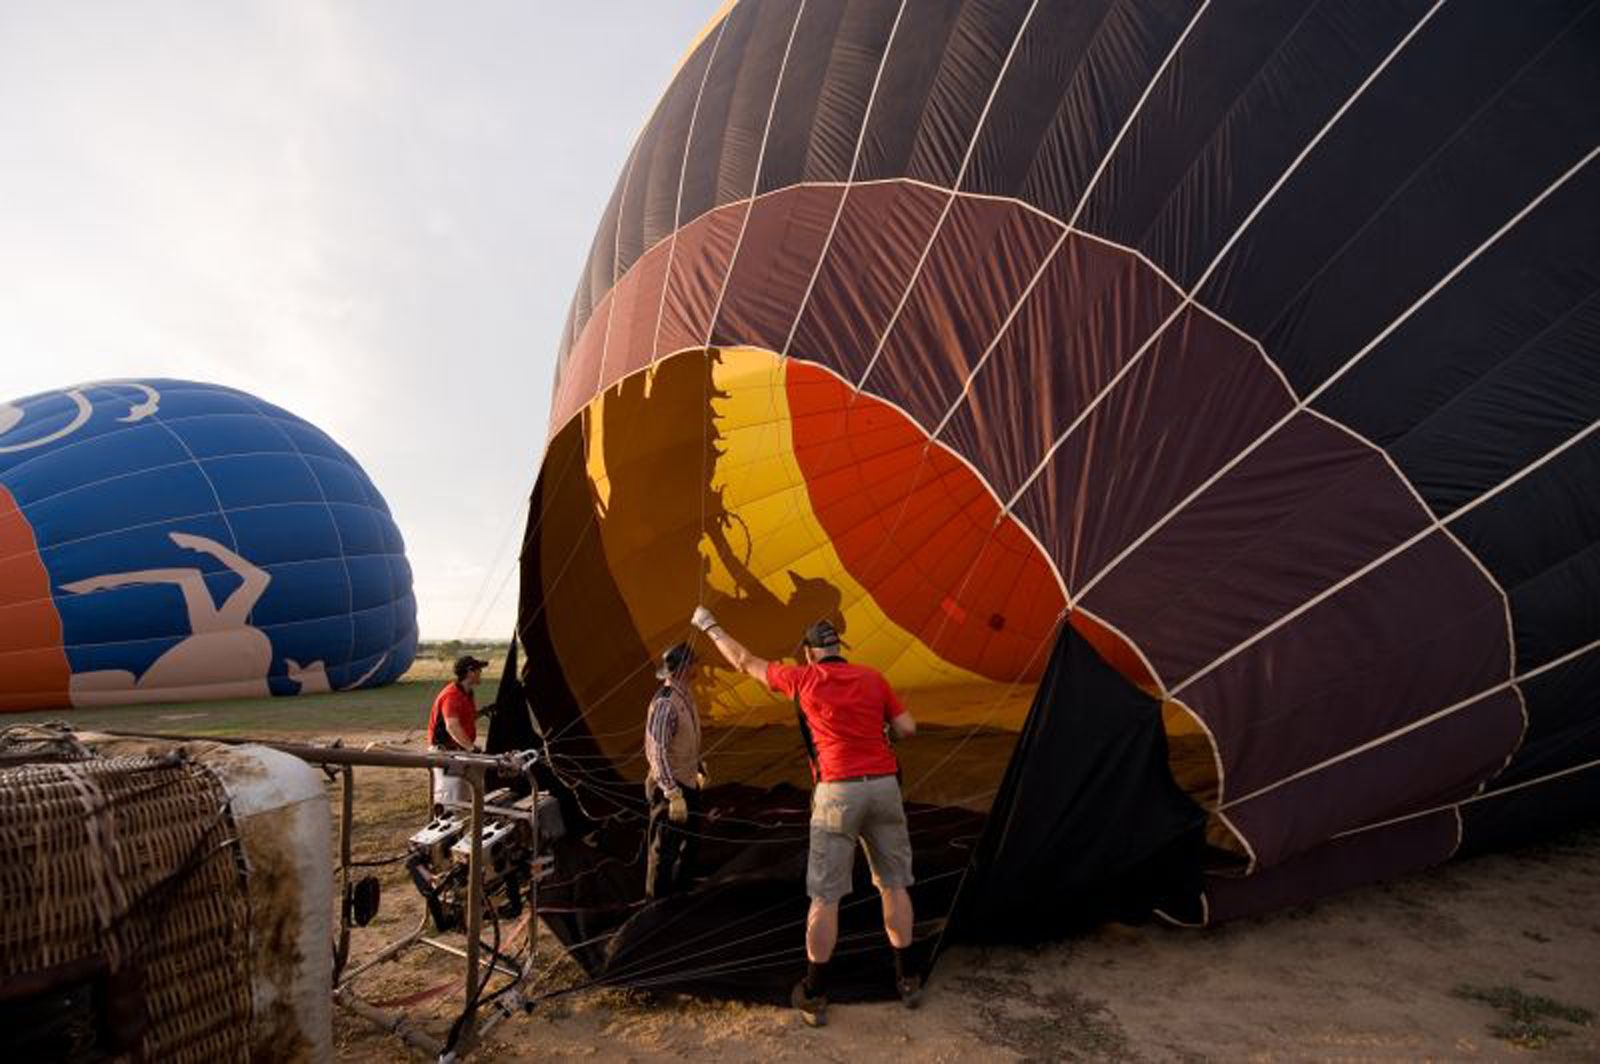 Hot air balloons on the ground in Colorado Springs